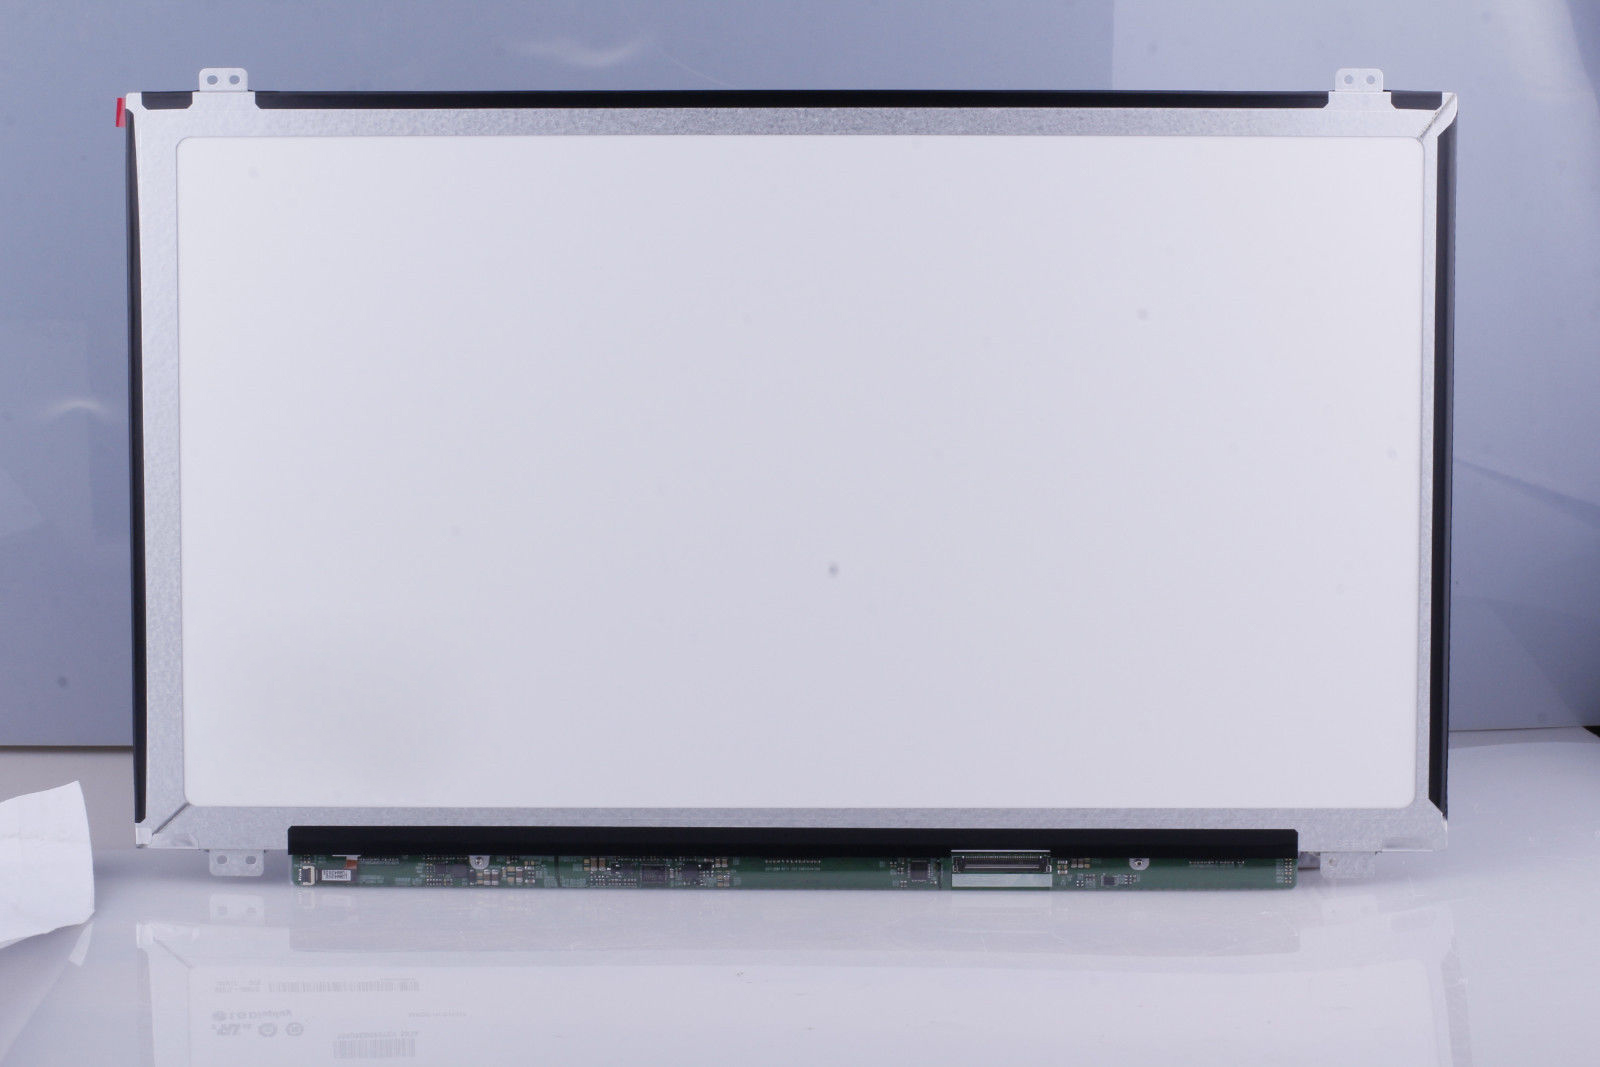 ФОТО QuYing Laptop LCD Screen for SONY SVE151G17M (15.6 inch 1366x768 40pin)